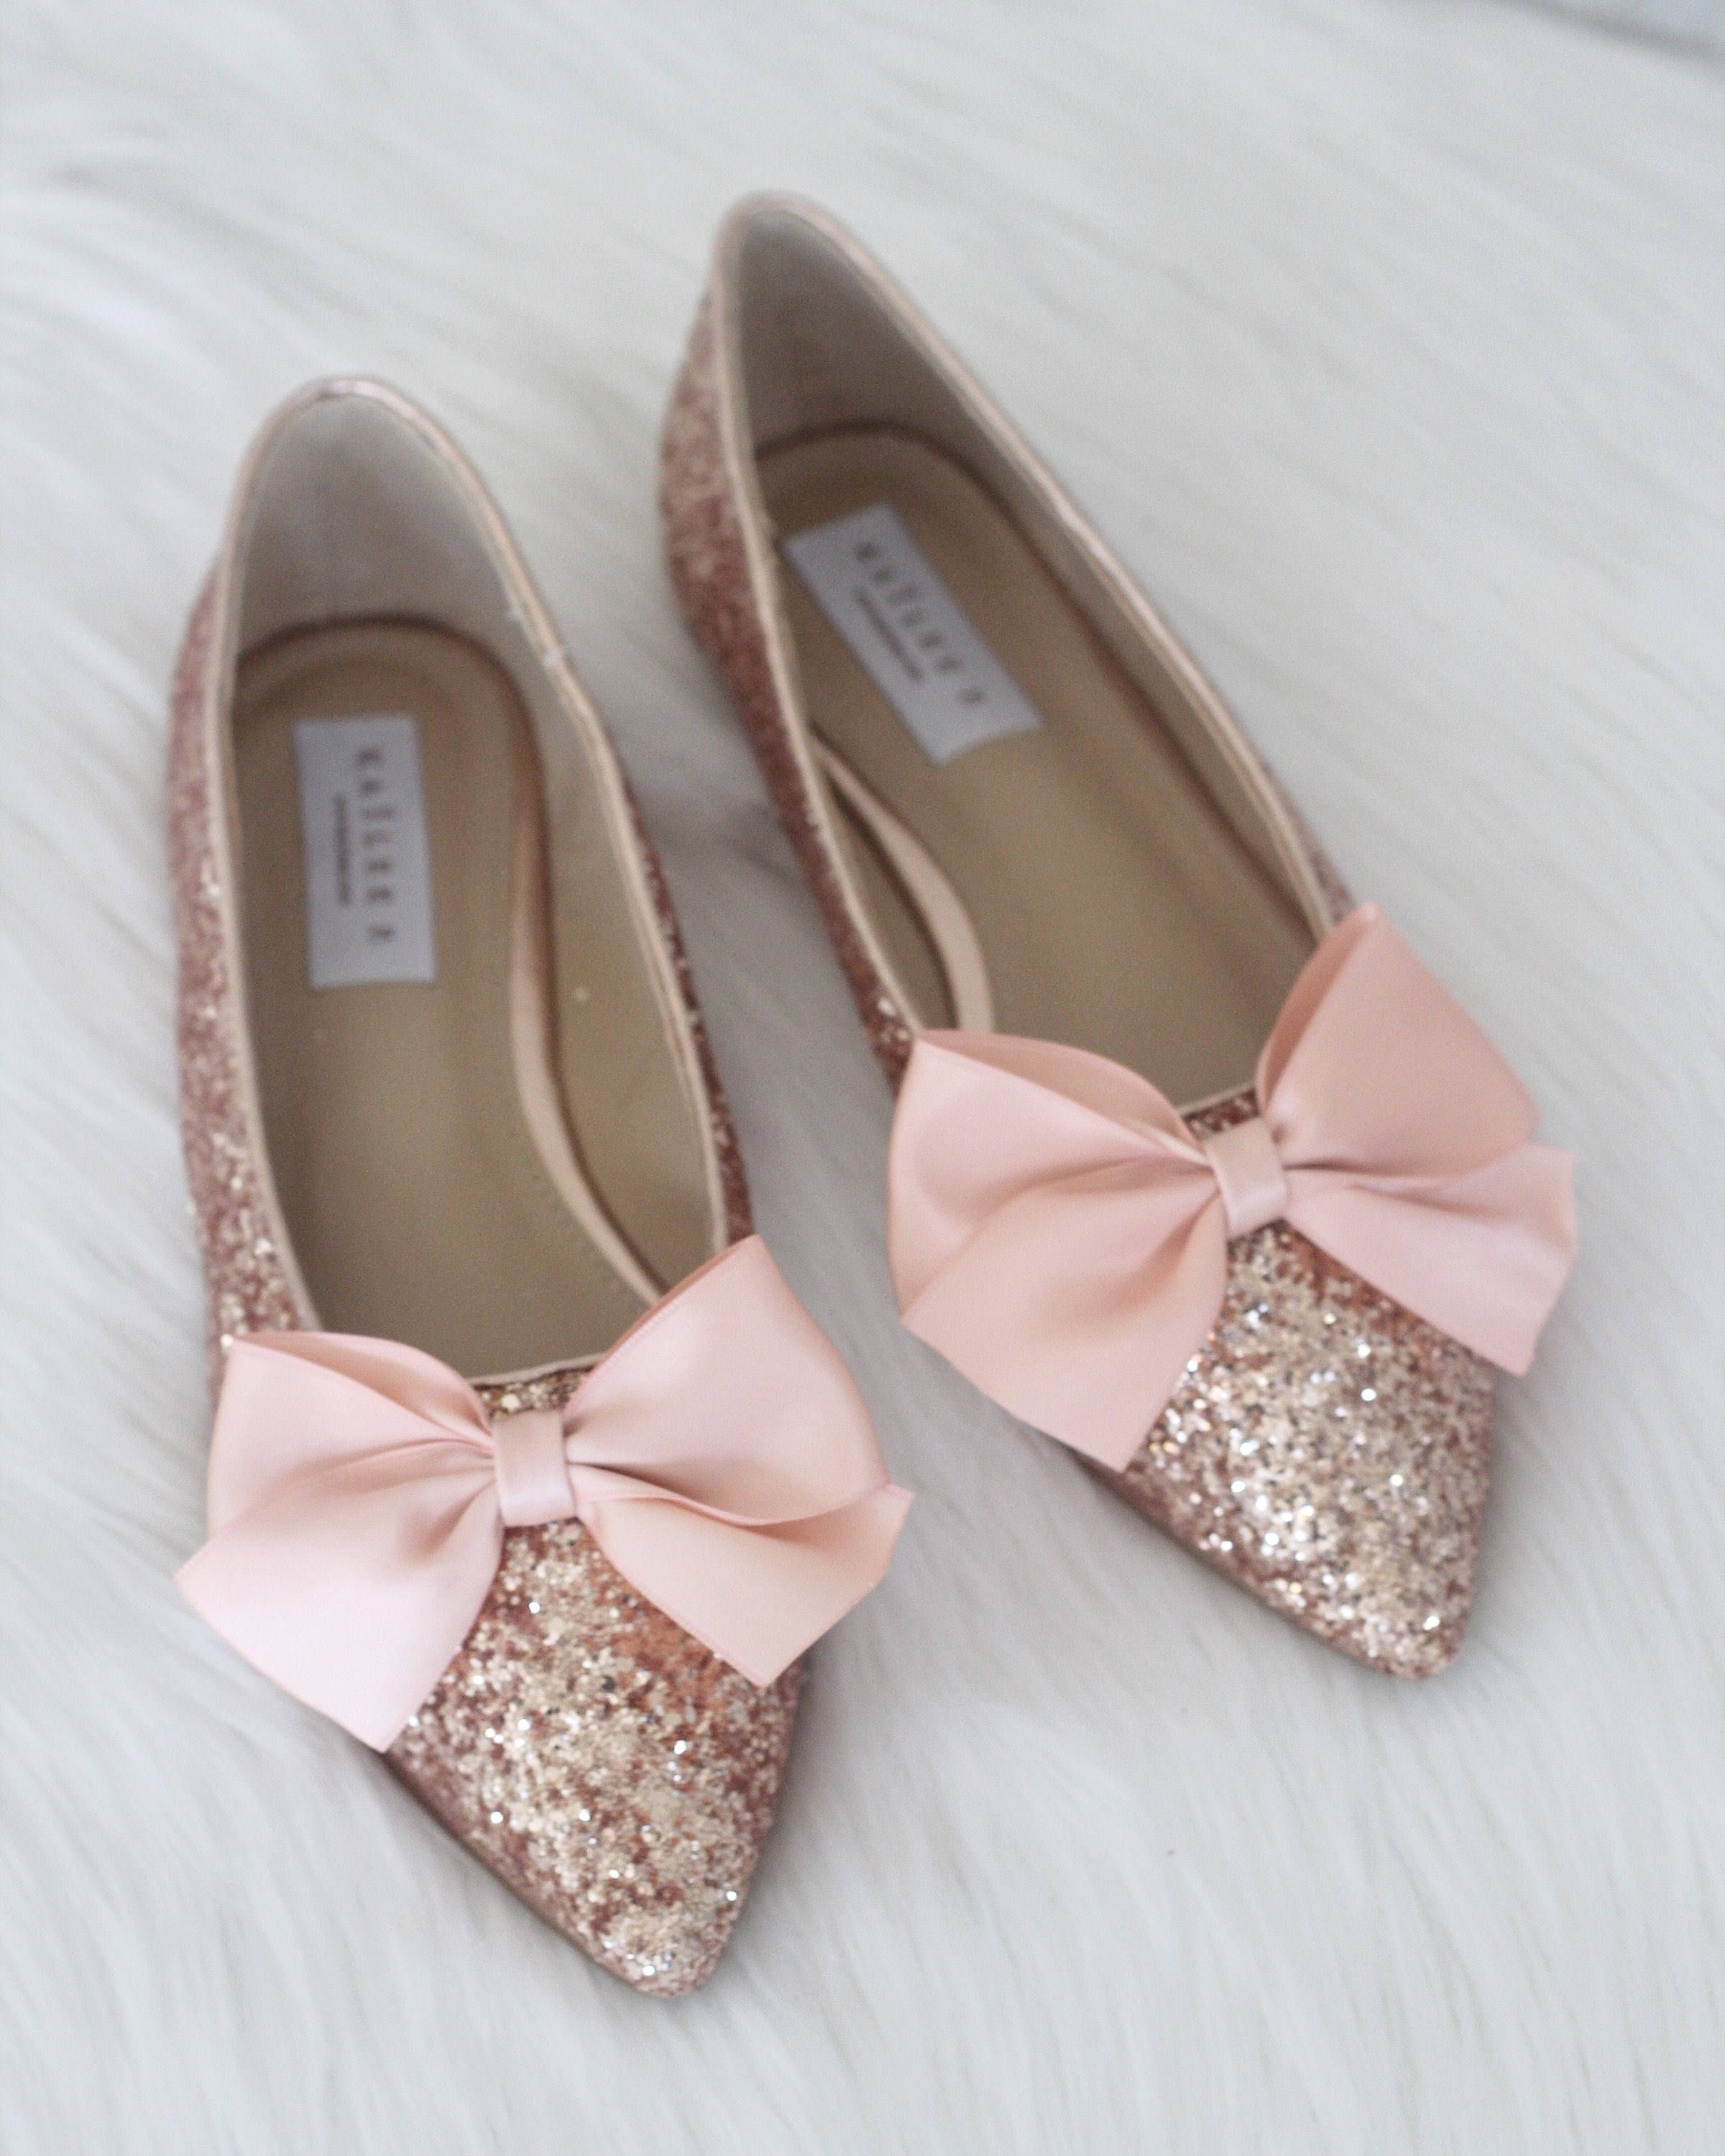 ce811b7bccdf8 Women Wedding Shoes Bridesmaid Shoes ROSE GOLD Rock Glitter